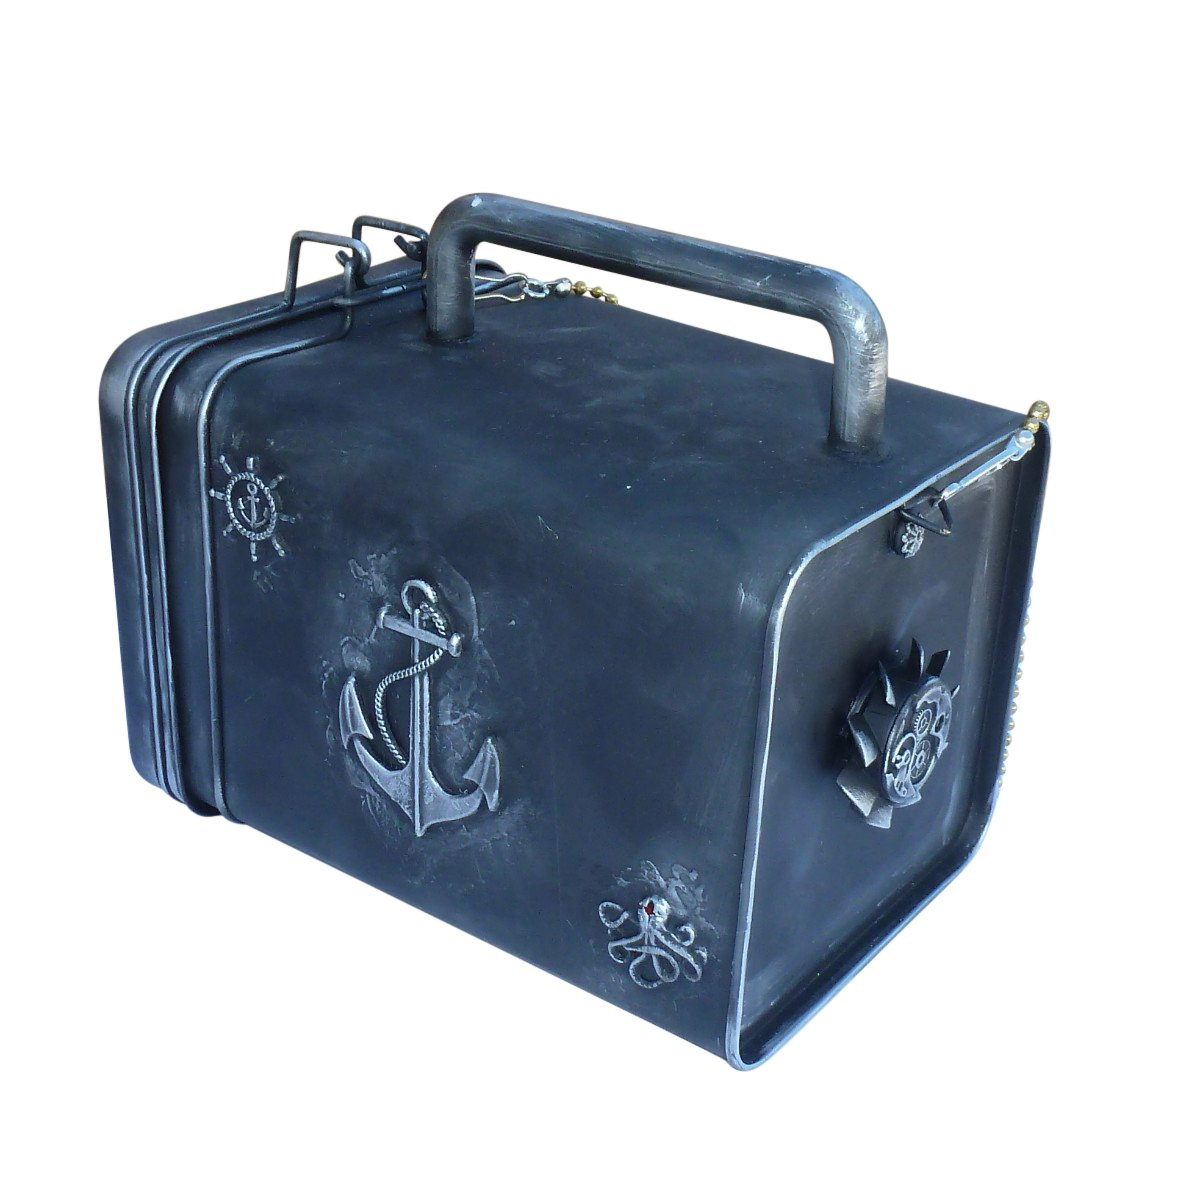 SteAMPunk travel Nautical Steampunk purse BOX handmade by OldJunkyardBoutique (Image #4)